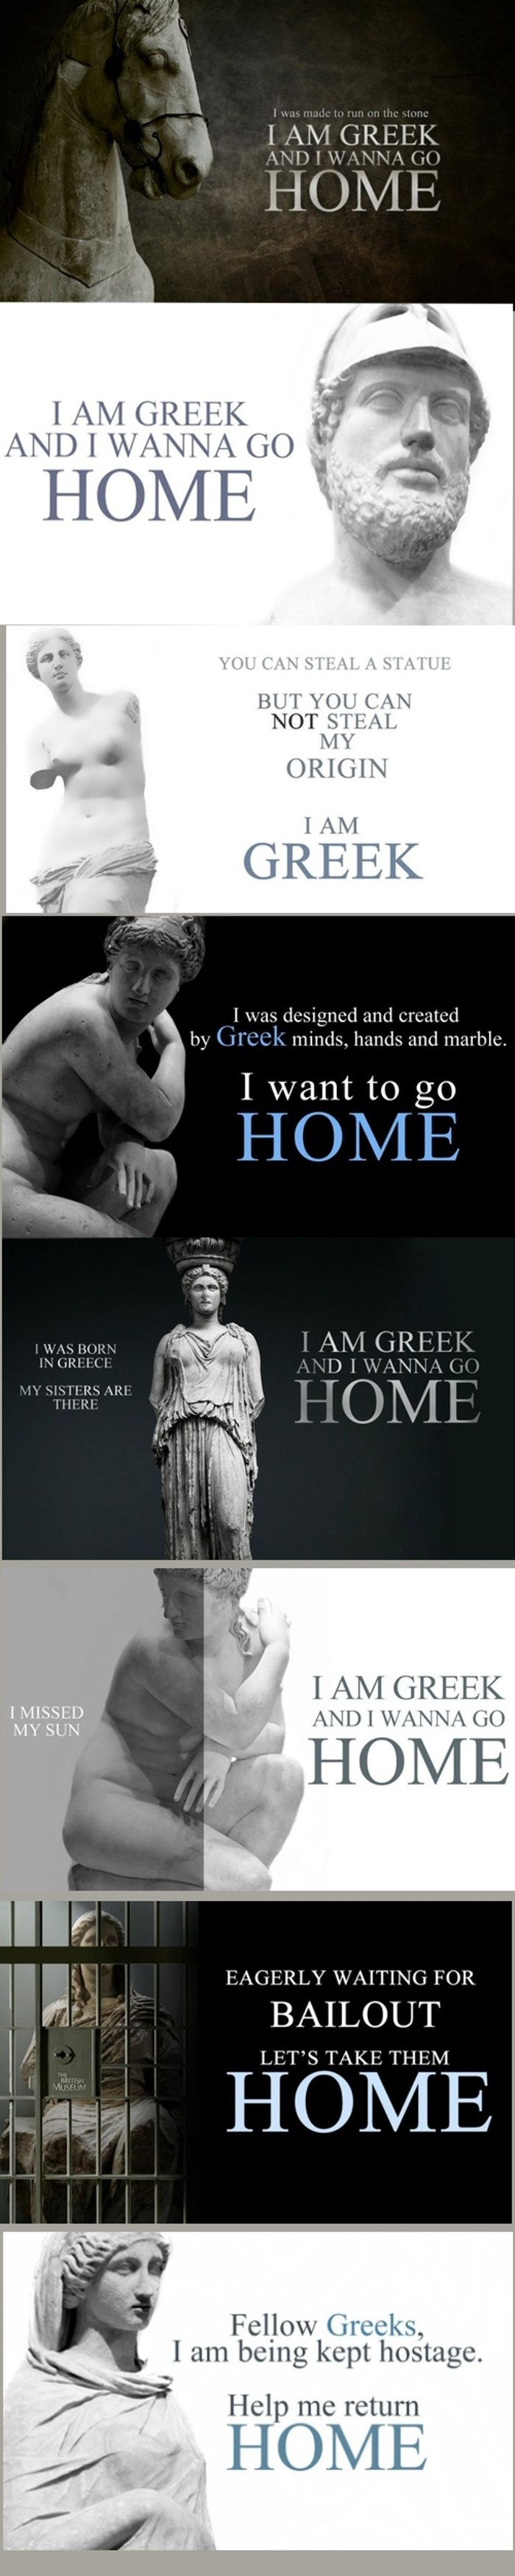 I am GREEK and I want to go HOME!